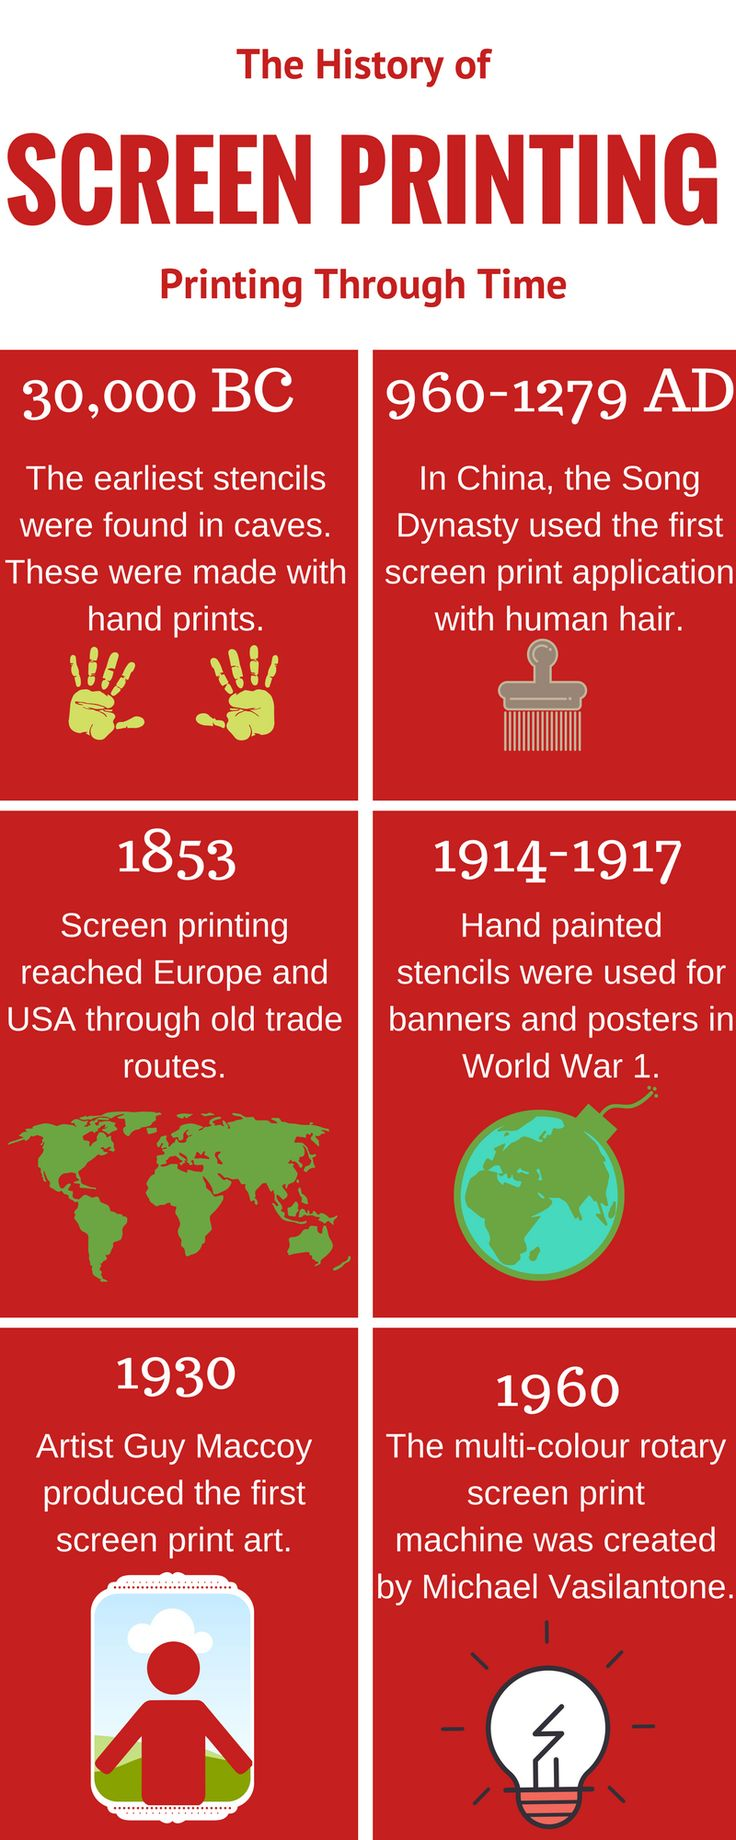 Learn about the history of screen printing in this infographic. View the original infographic here: https://www.canva.com/design/DACPHZqEGxk/share?role=EDITOR&token=8pIJ0_hbspi9CFZ_lsU-kw&utm_content=DACPHZqEGxk&utm_campaign=designshare&utm_medium=link&utm_source=sharebutton  Also, to find out more about screen printing visit: http://www.clearpoint-print.com/  Contact us: Park Lane Basford Nottingham  NG6 0DT  Tel: 01159 797 925 Fax: 0115 9797958